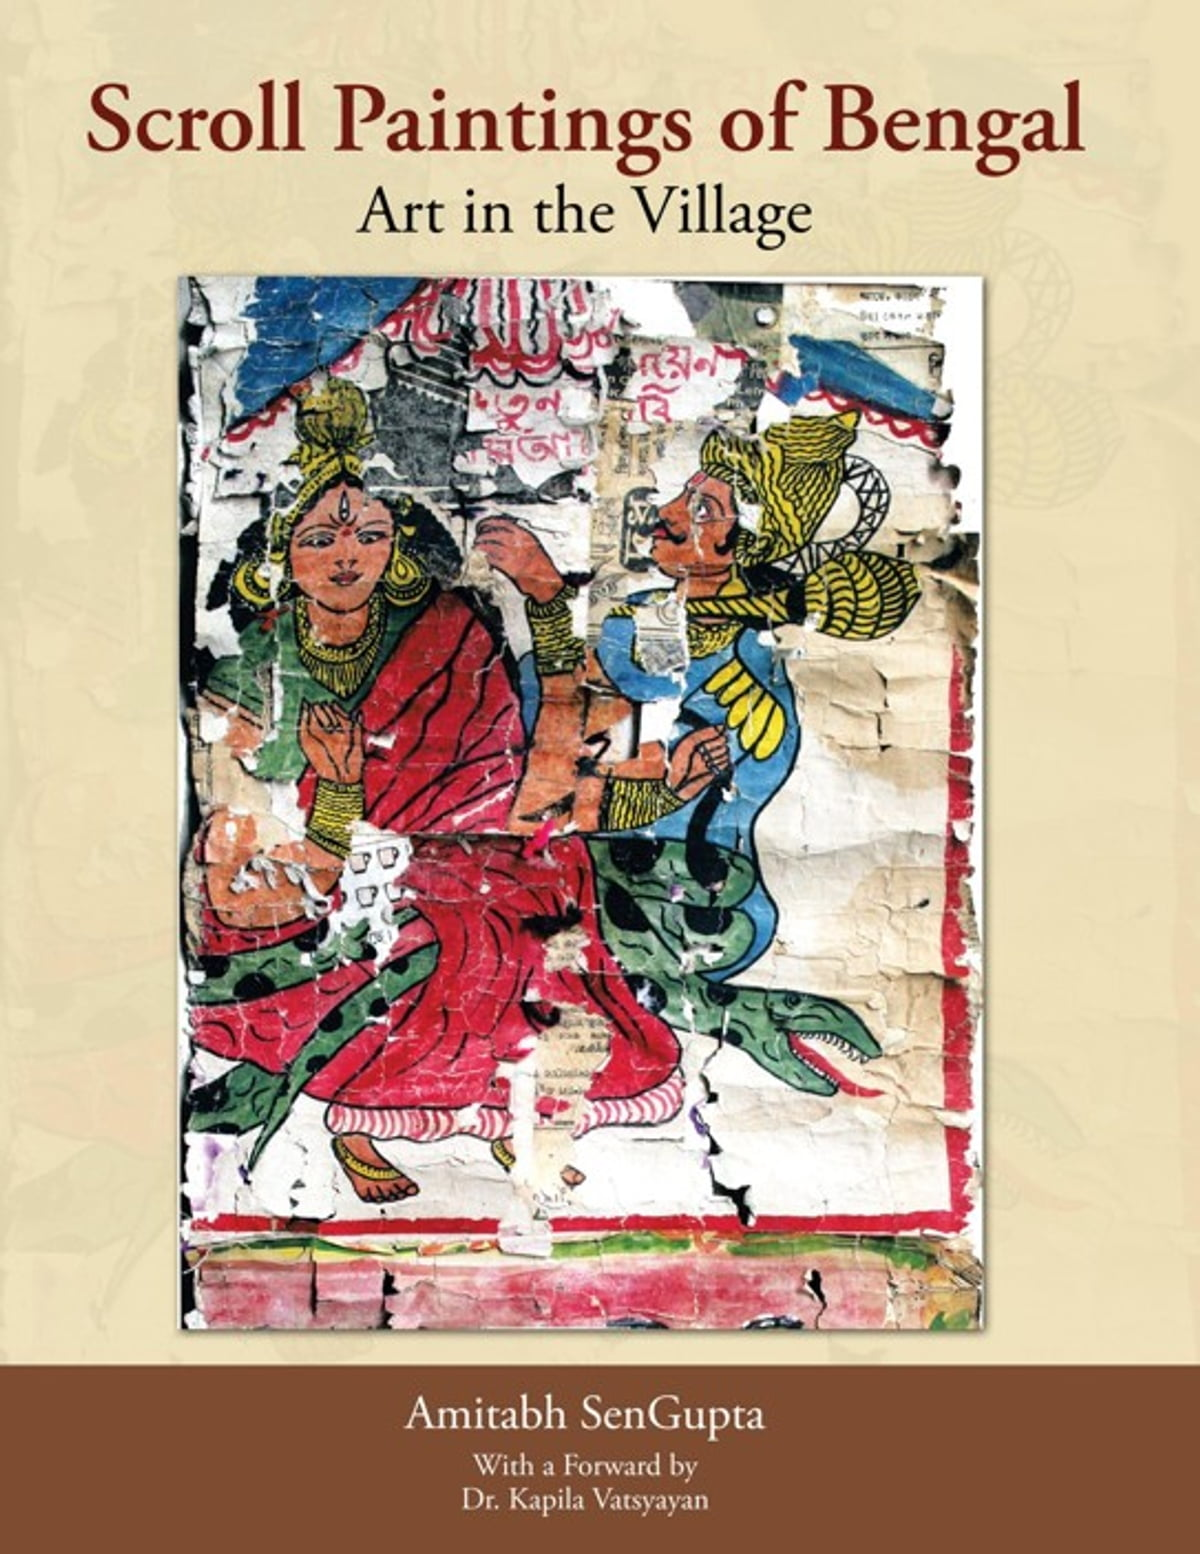 Scroll Paintings of Bengal ebook by Amitabh SenGupta - Rakuten Kobo